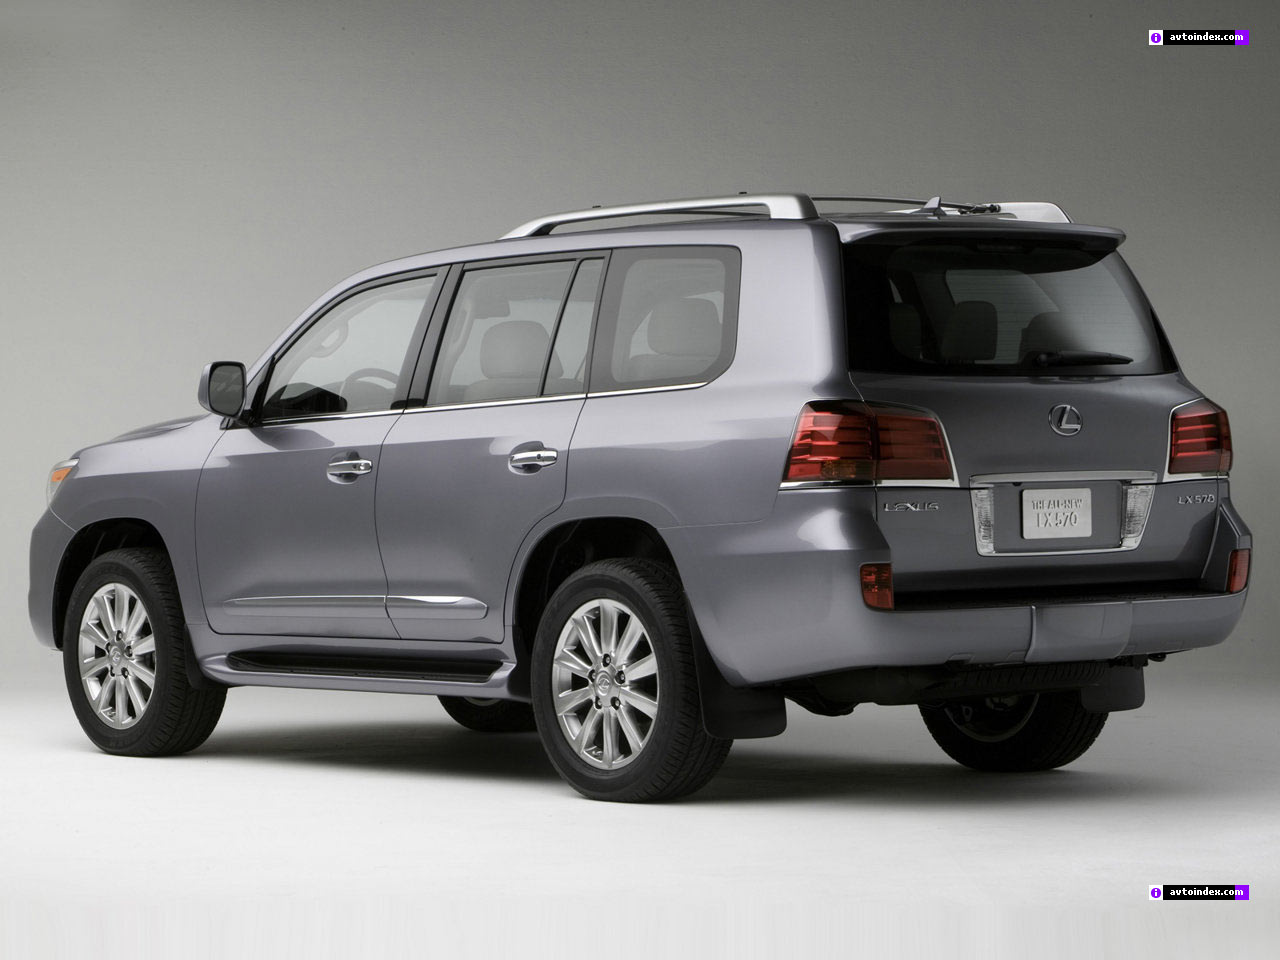 Lexus lx570 photo - 1